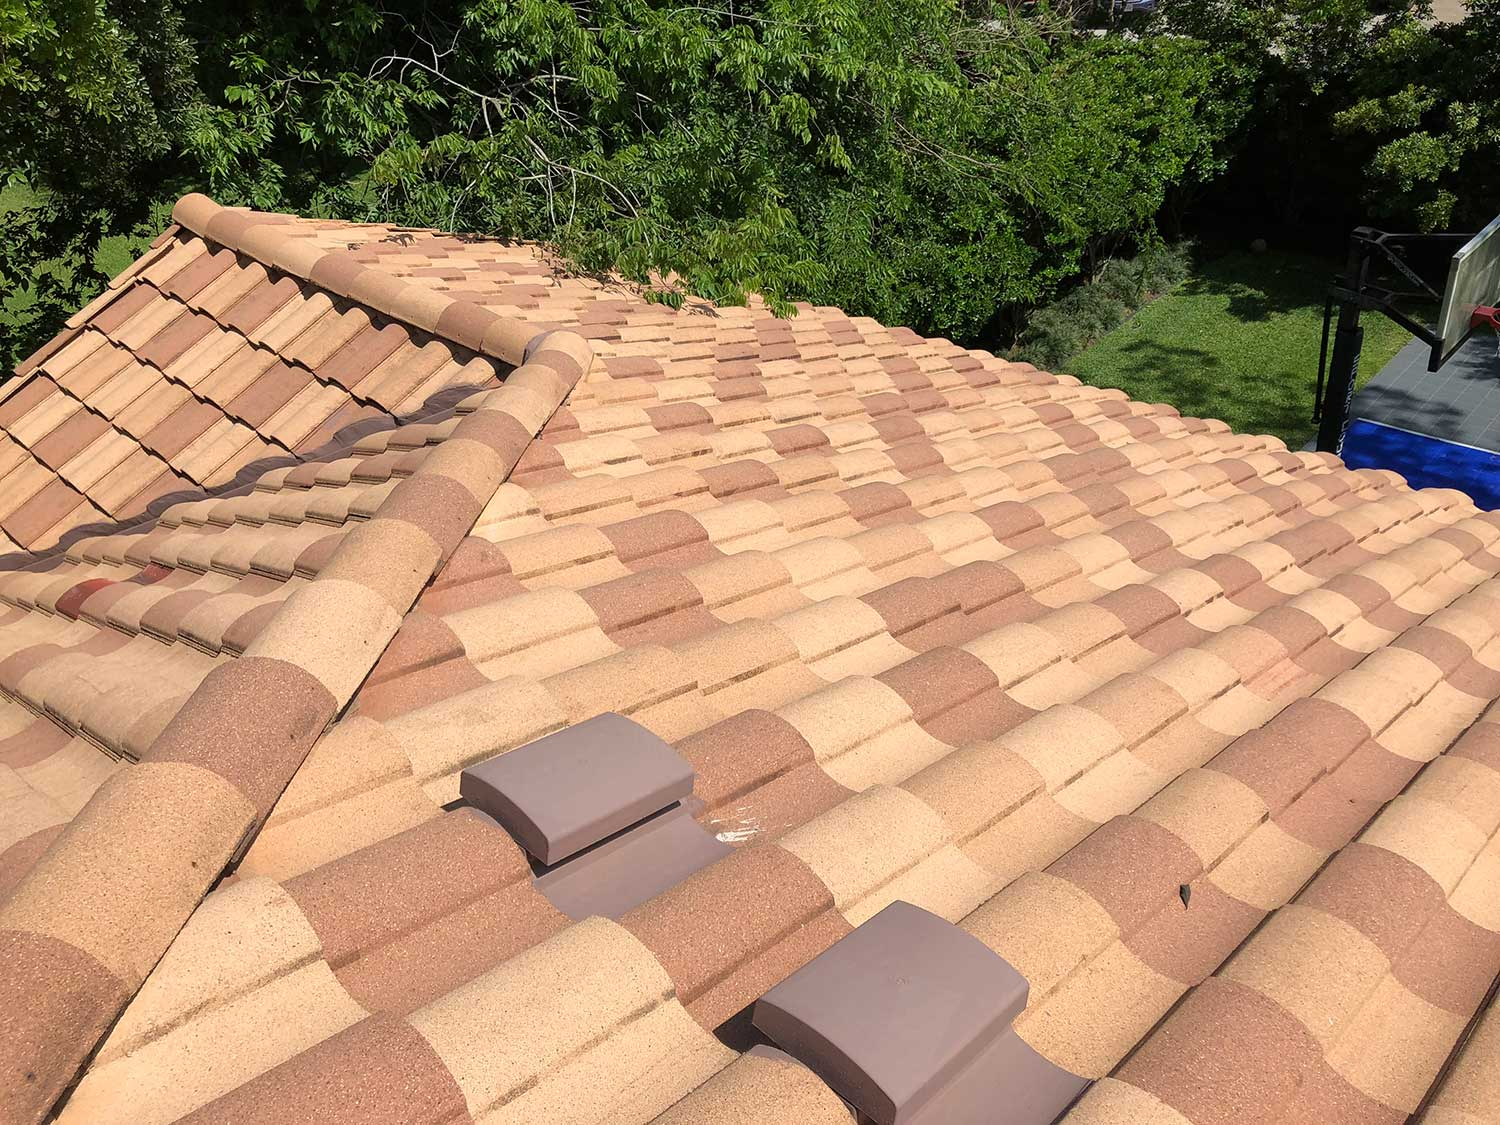 Roof Repair Amp Service Clay Tile Roofing Metal Roofing